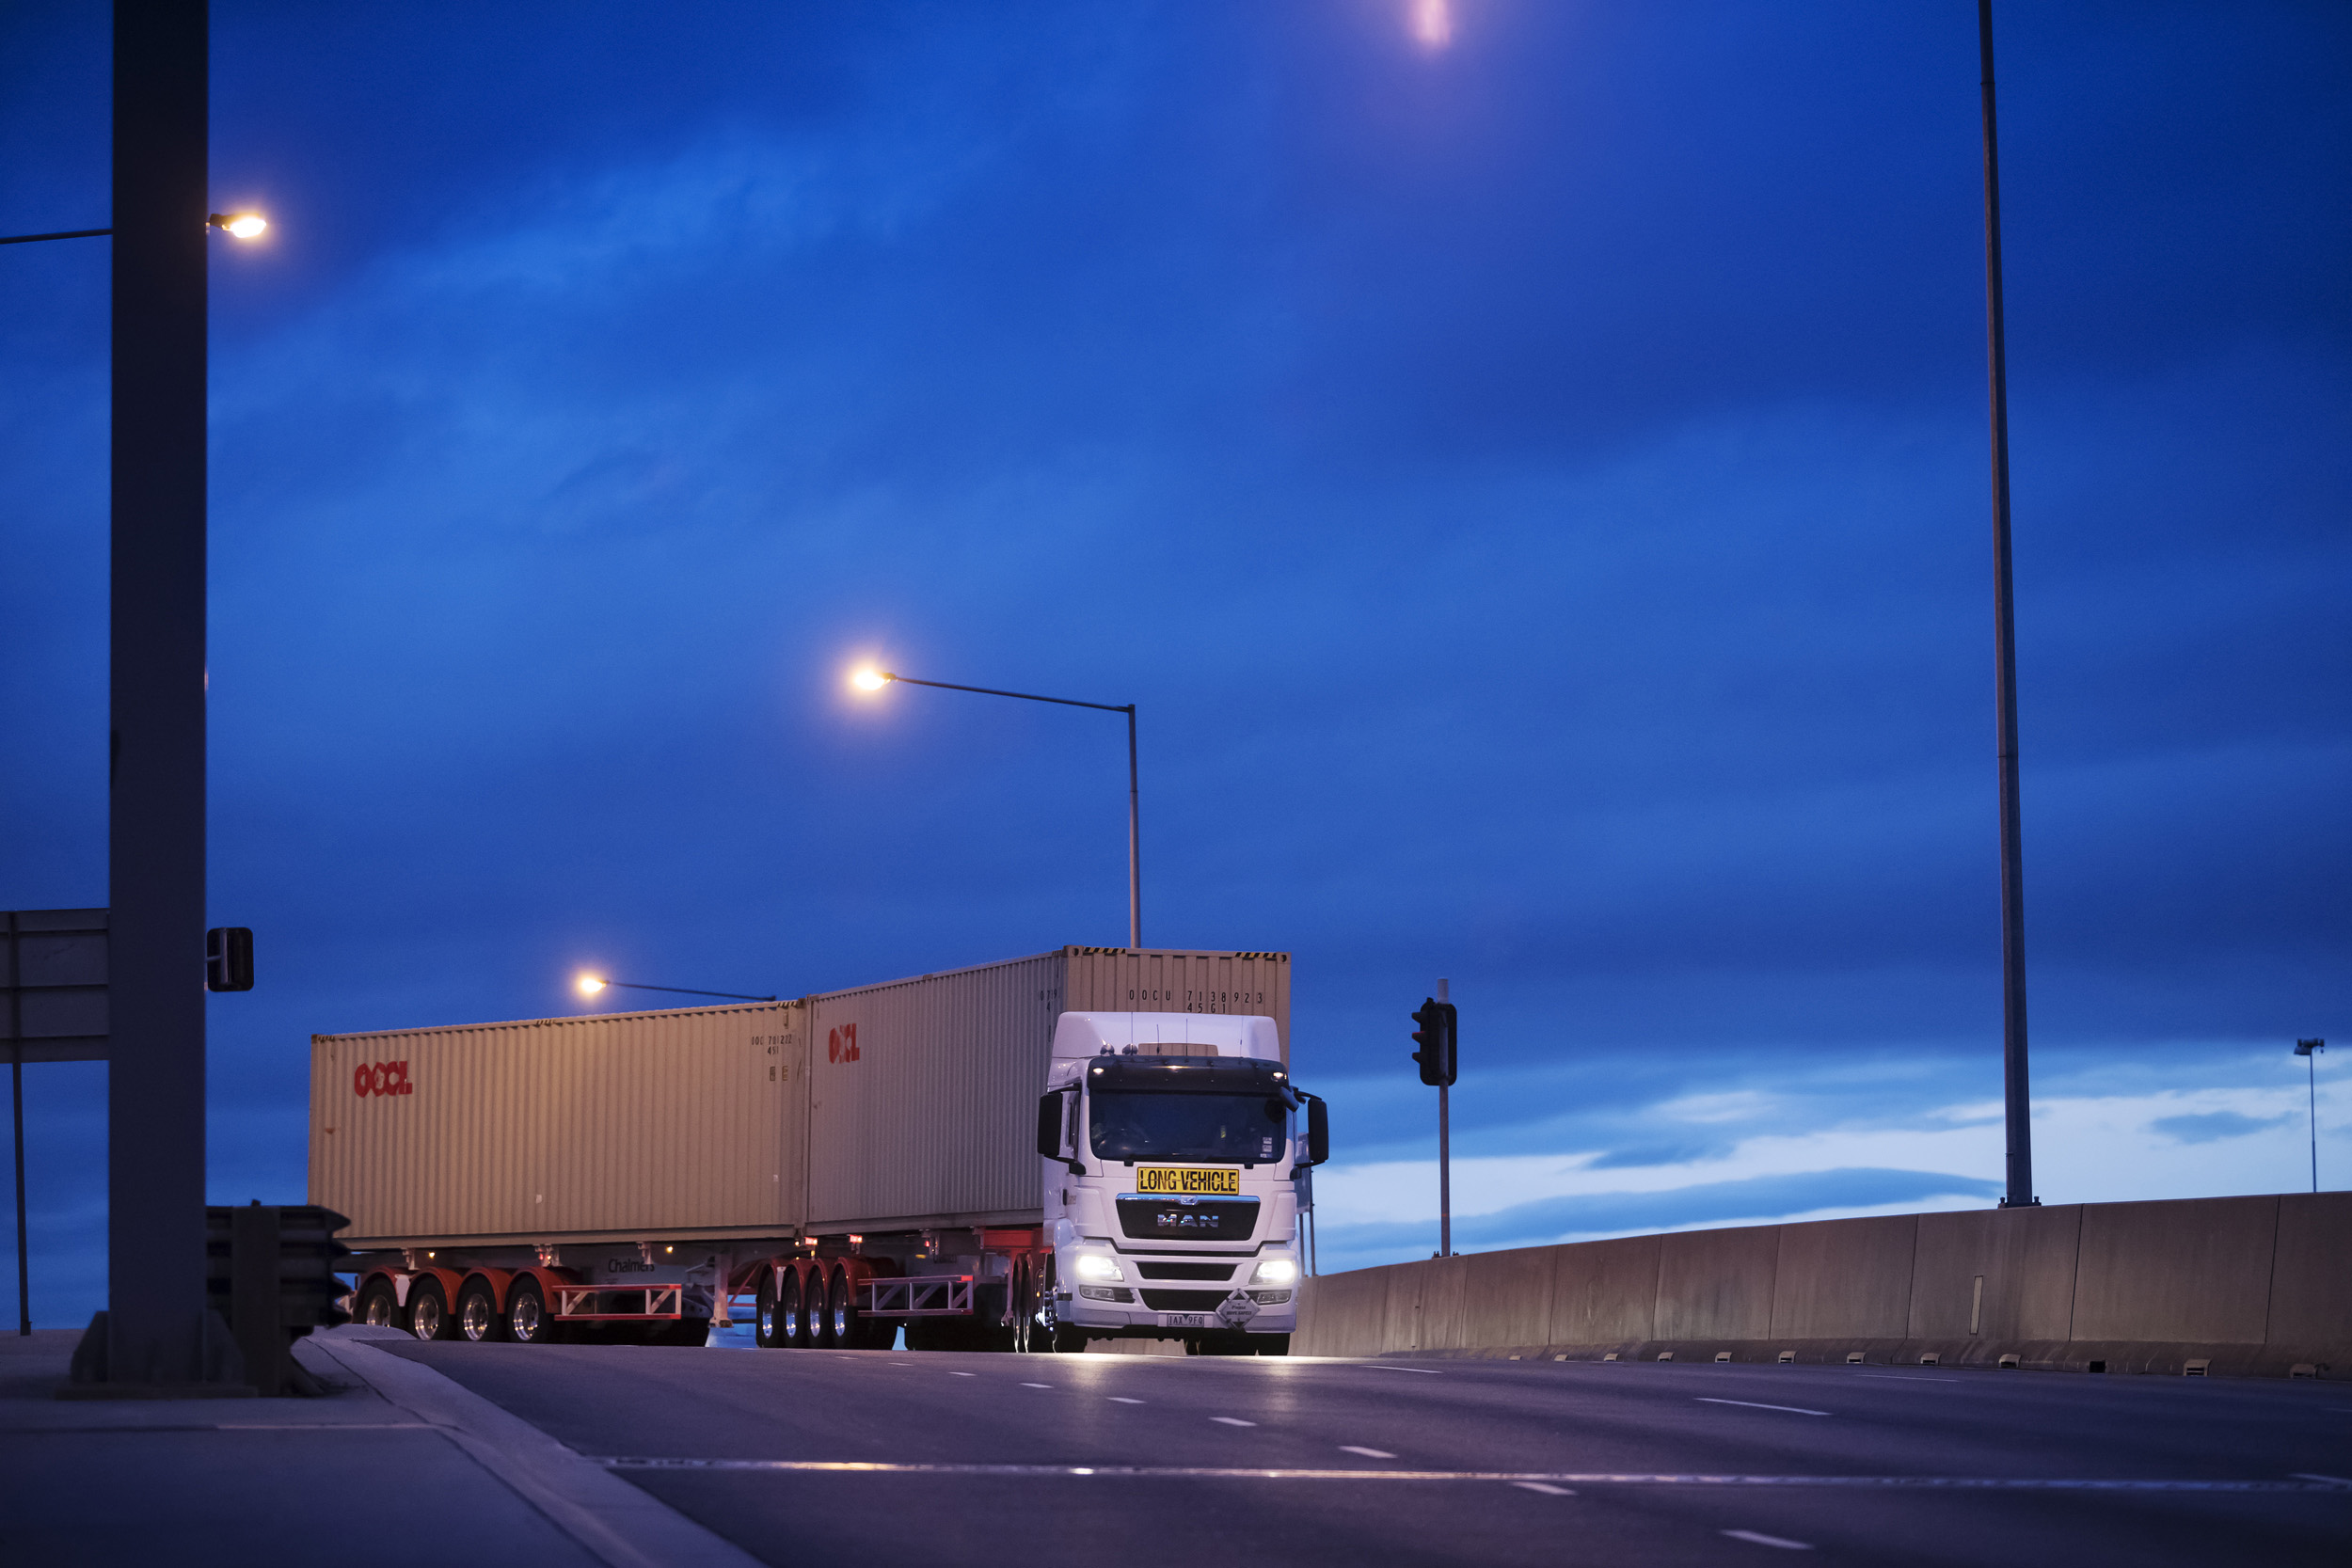 An MAN truck turning a corner at night. Paul Scott, industry